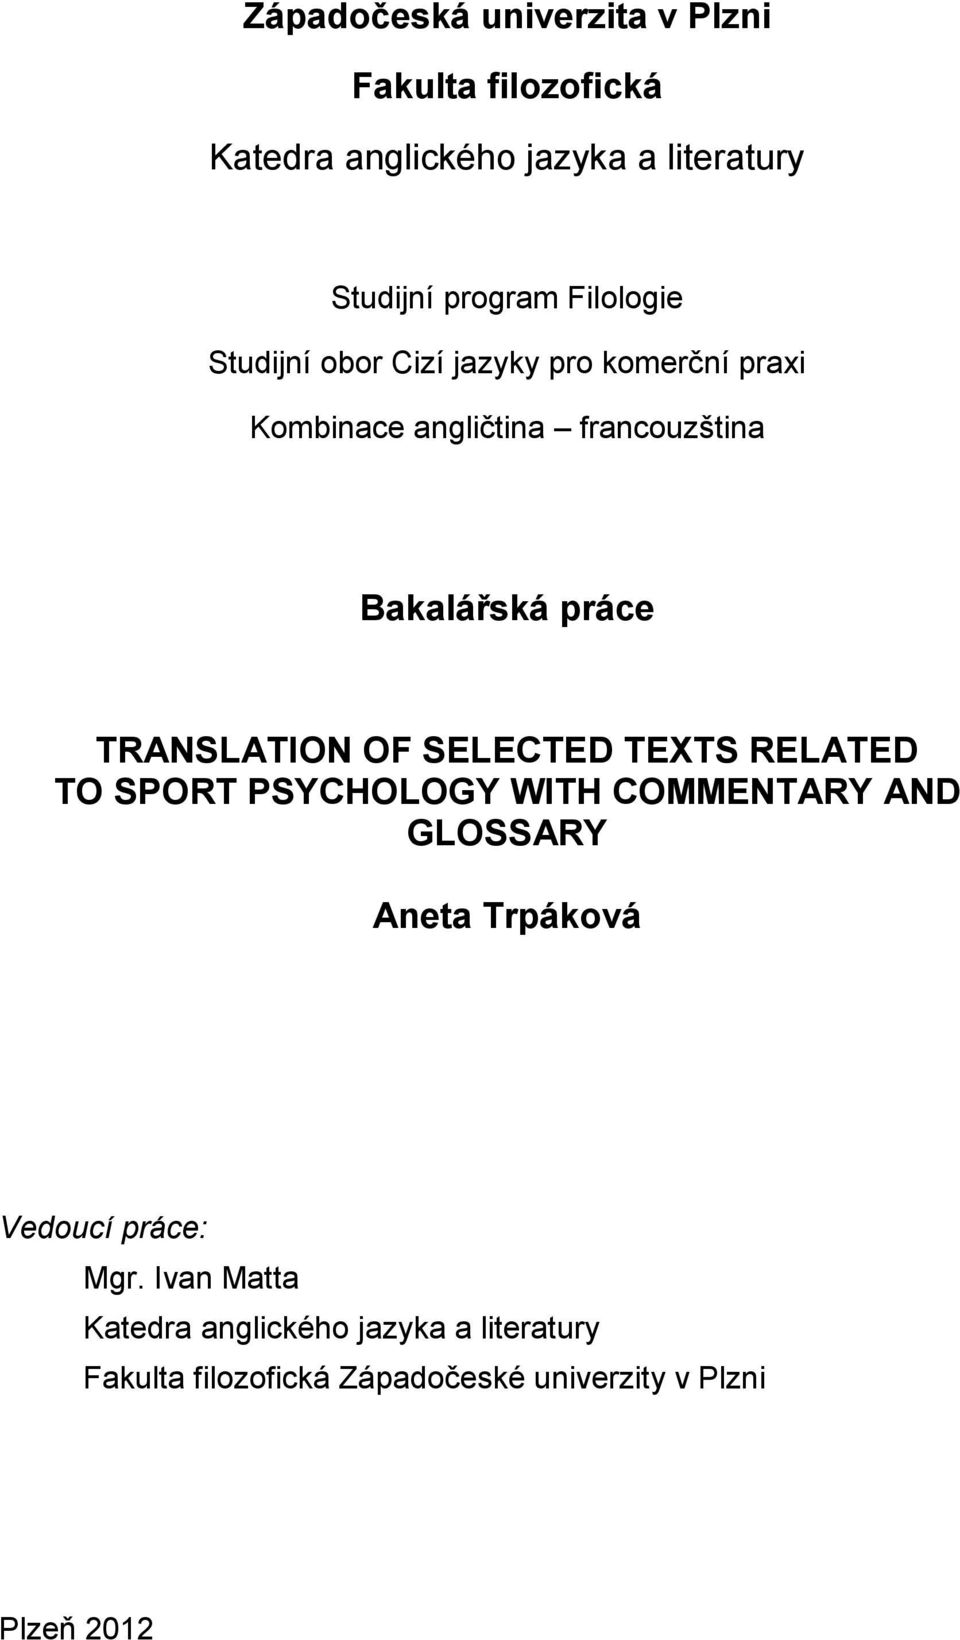 TRANSLATION OF SELECTED TEXTS RELATED TO SPORT PSYCHOLOGY WITH COMMENTARY AND GLOSSARY Aneta Trpáková Vedoucí